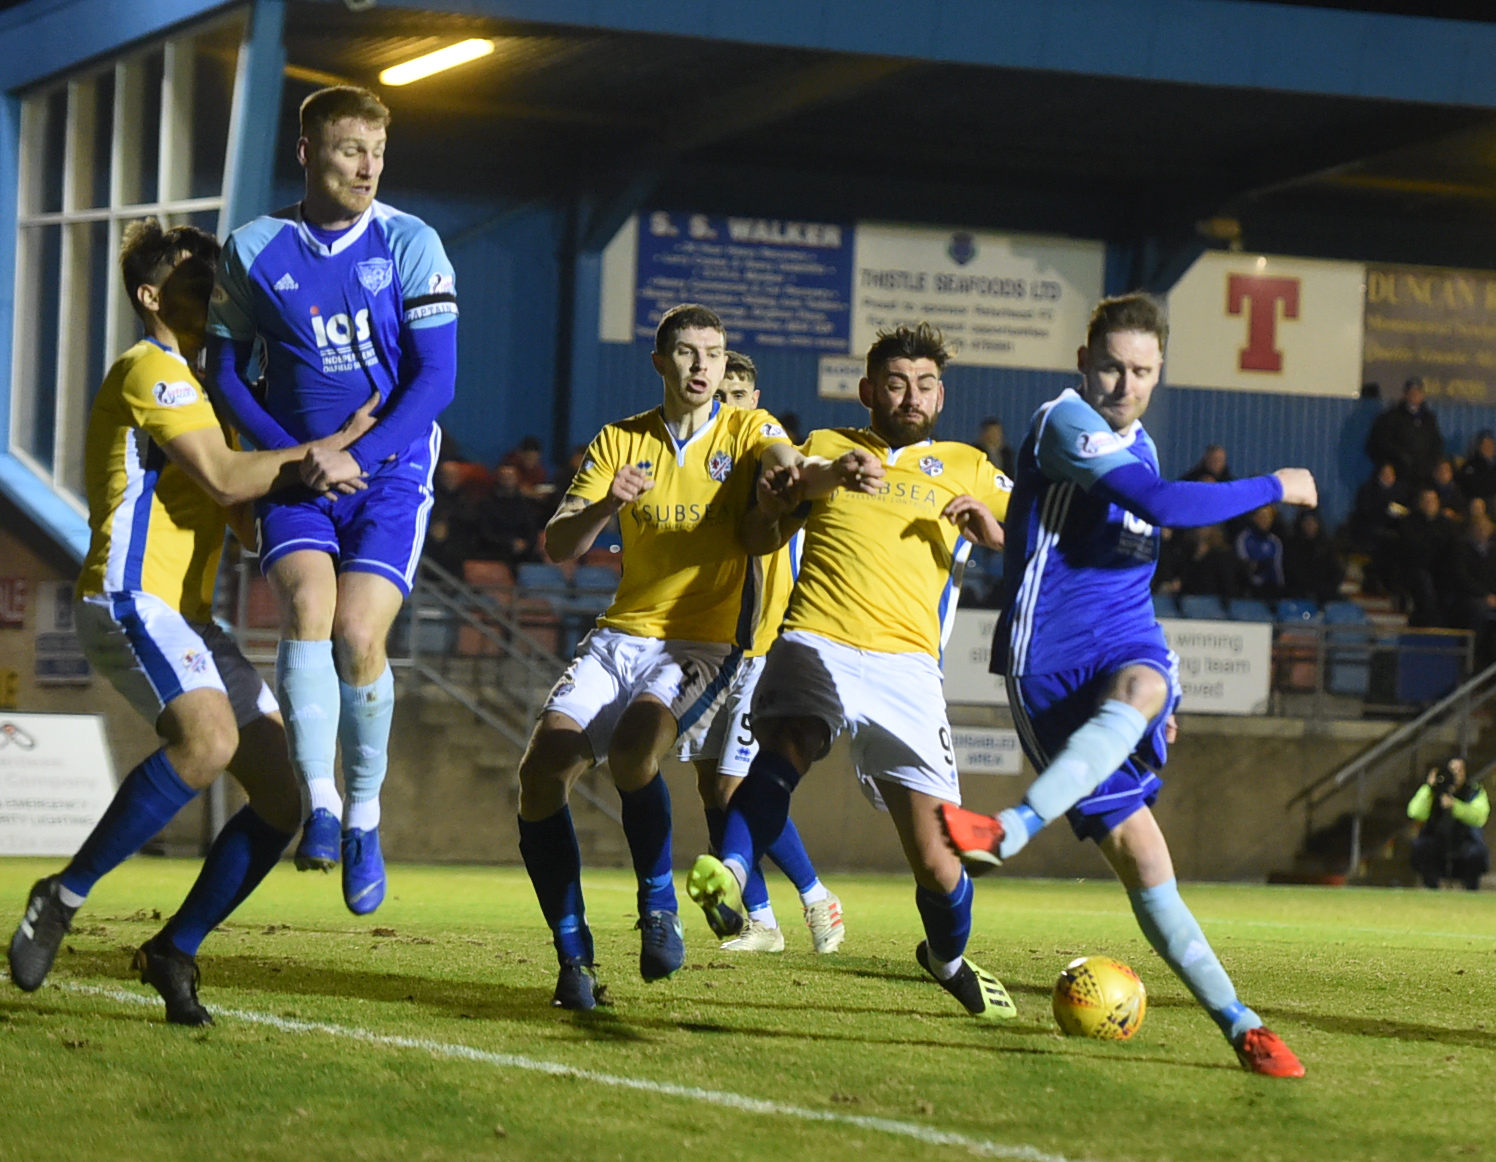 Peterhead's Mick Dunlop (right) shoots at goal during the game with Cowdenbeath Picture by Jim Irvine